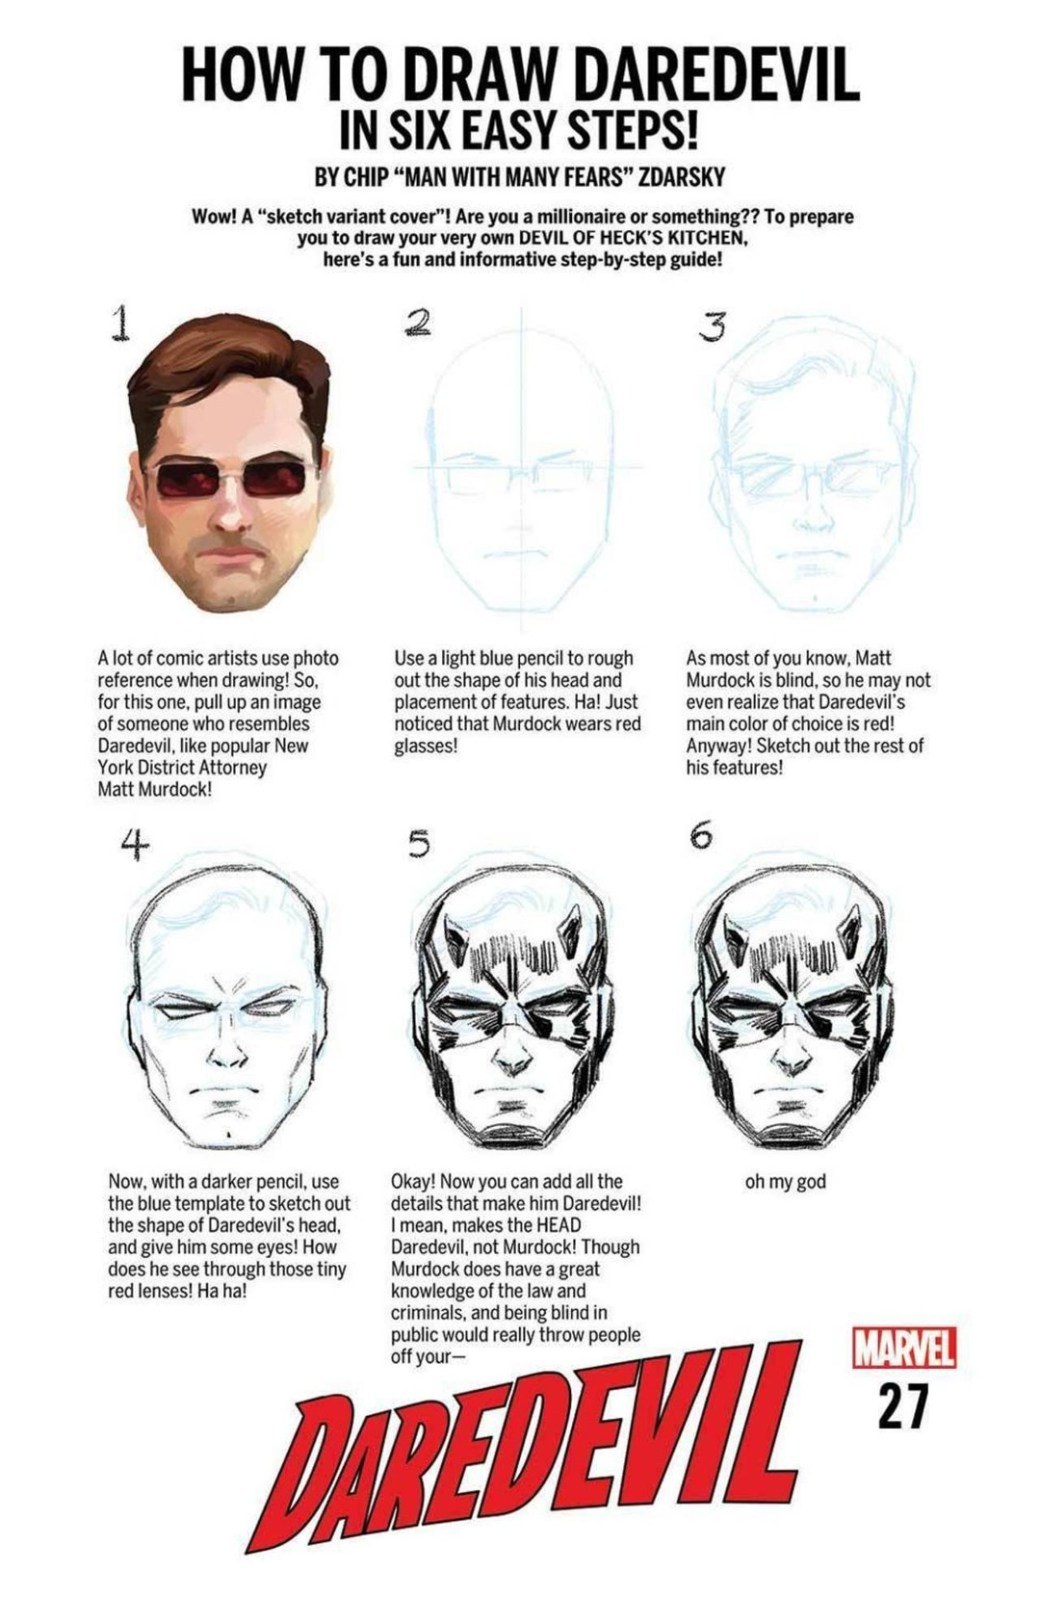 daredevil-how-to-draw-variant-cvr-1501629681500_1280w